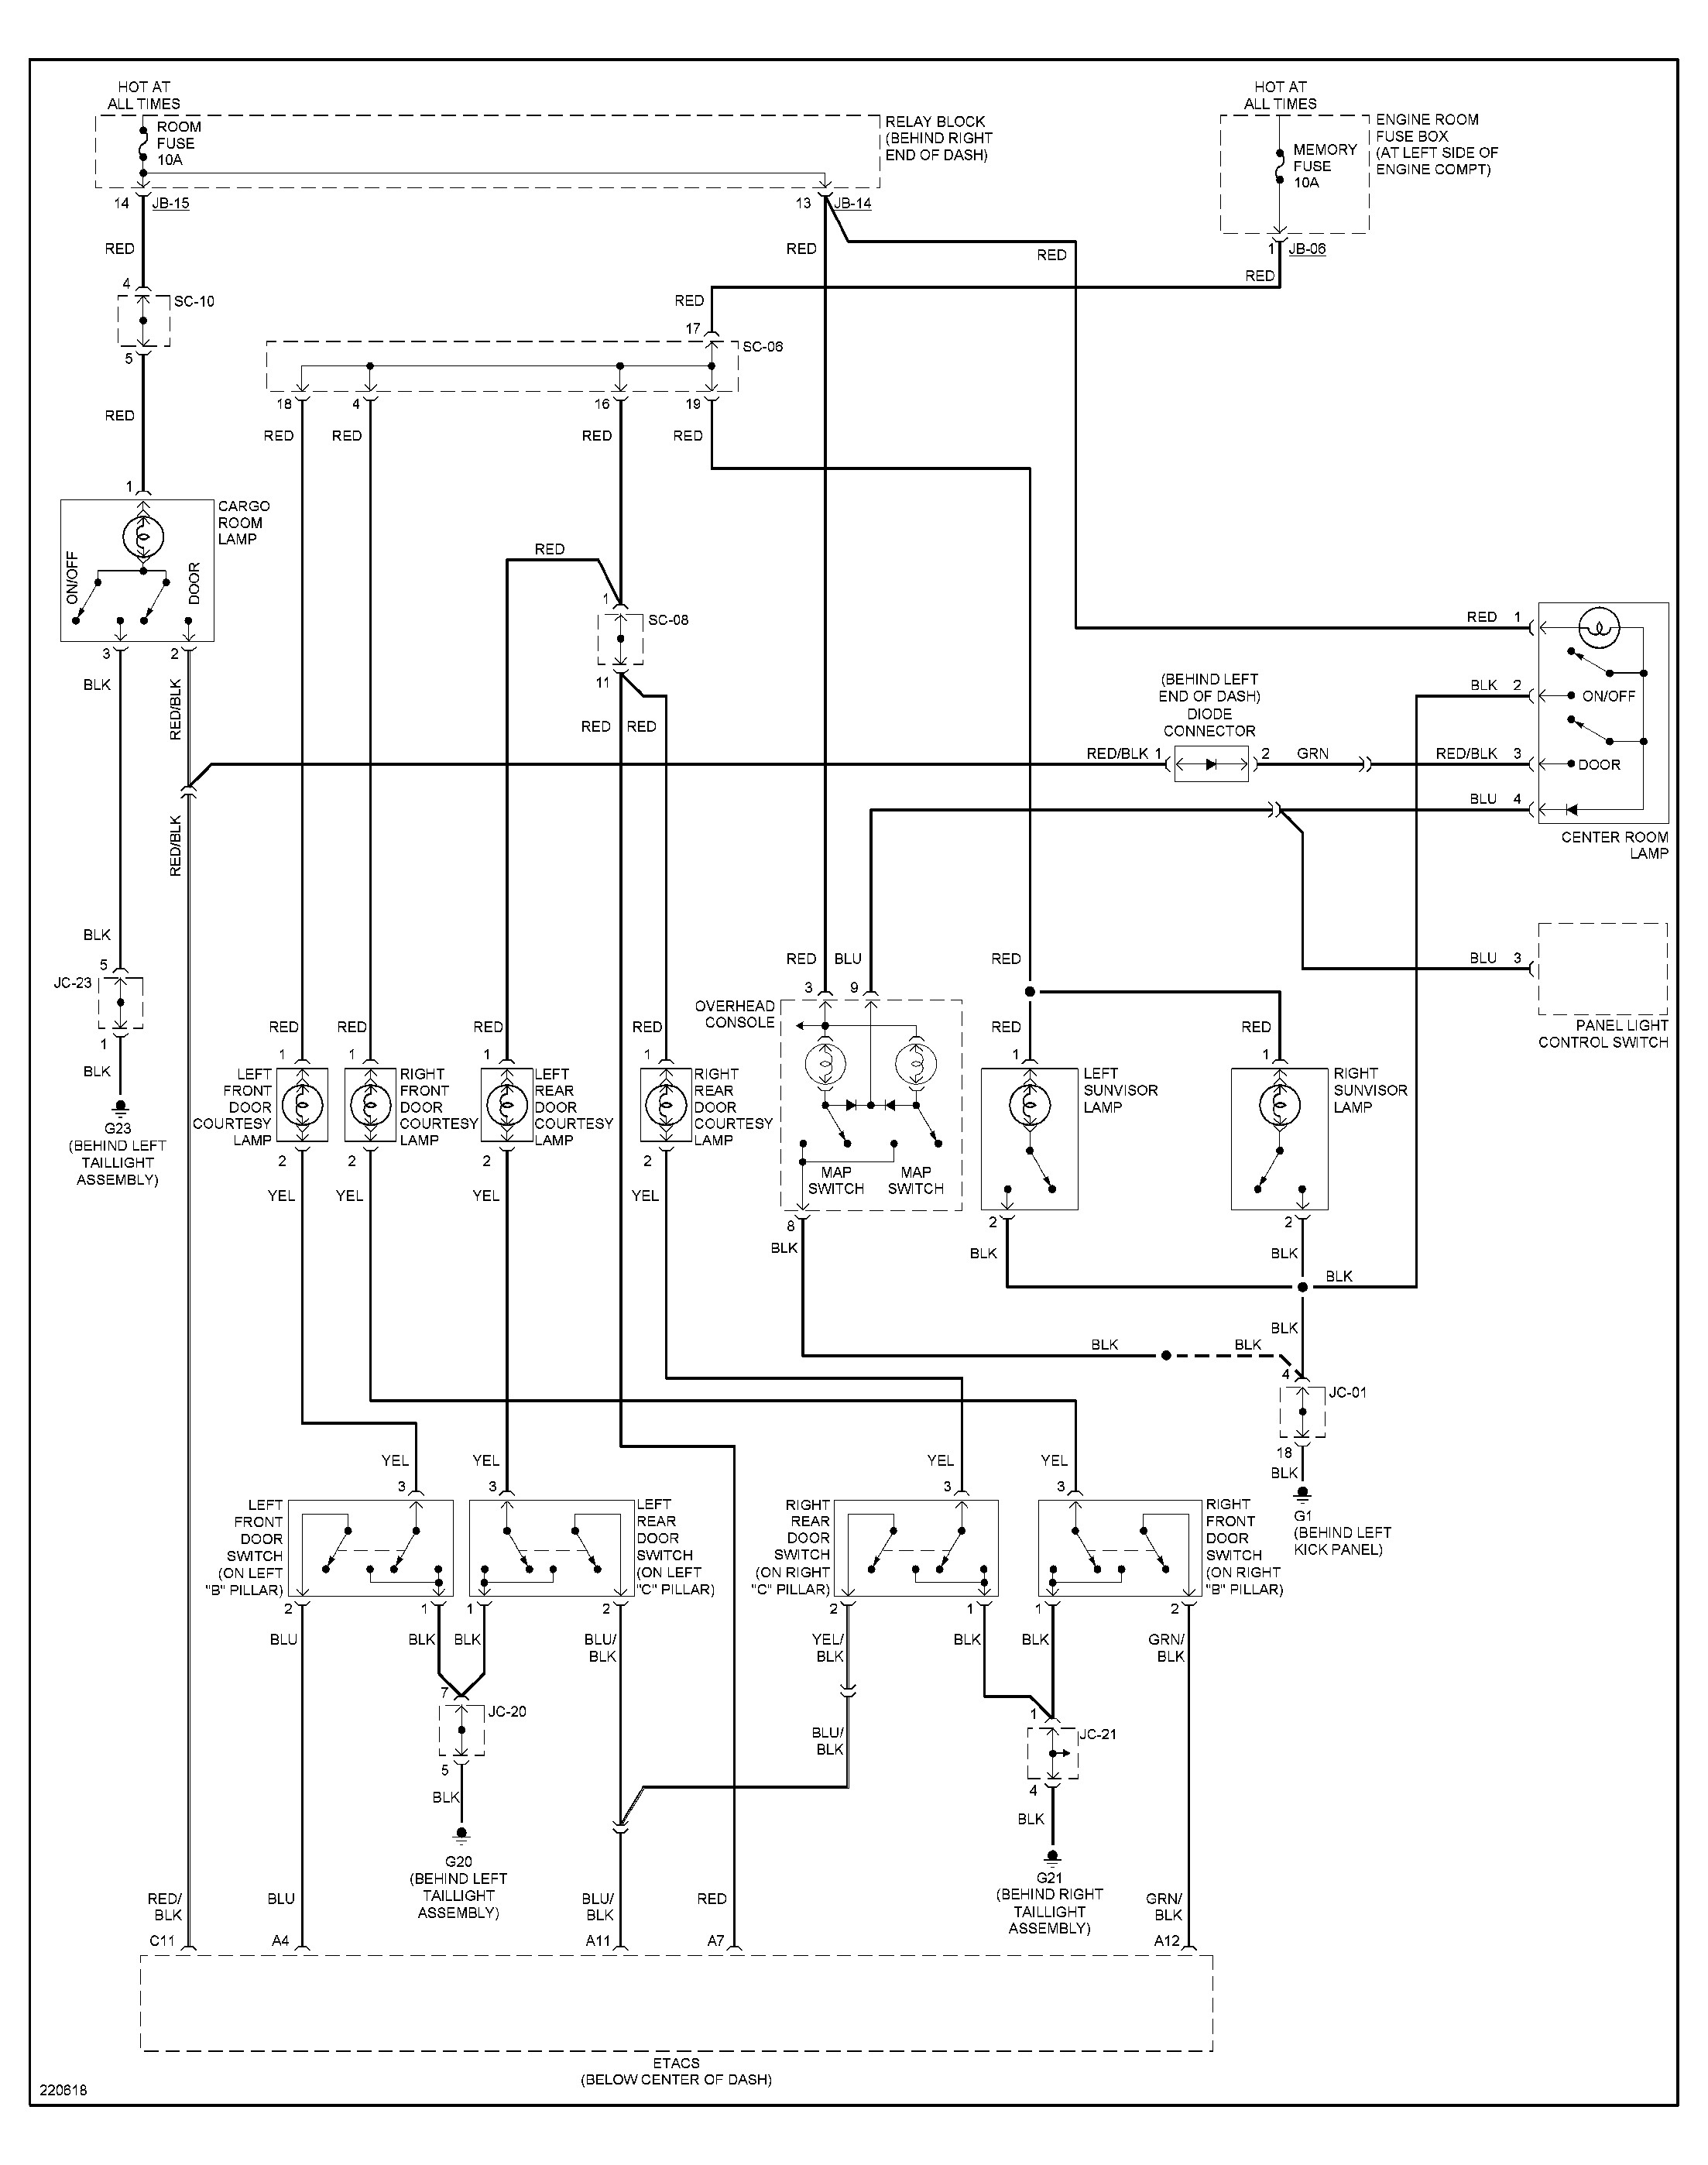 wiring diagram 2001 kia rio kia radio wiring diagram kia. Black Bedroom Furniture Sets. Home Design Ideas